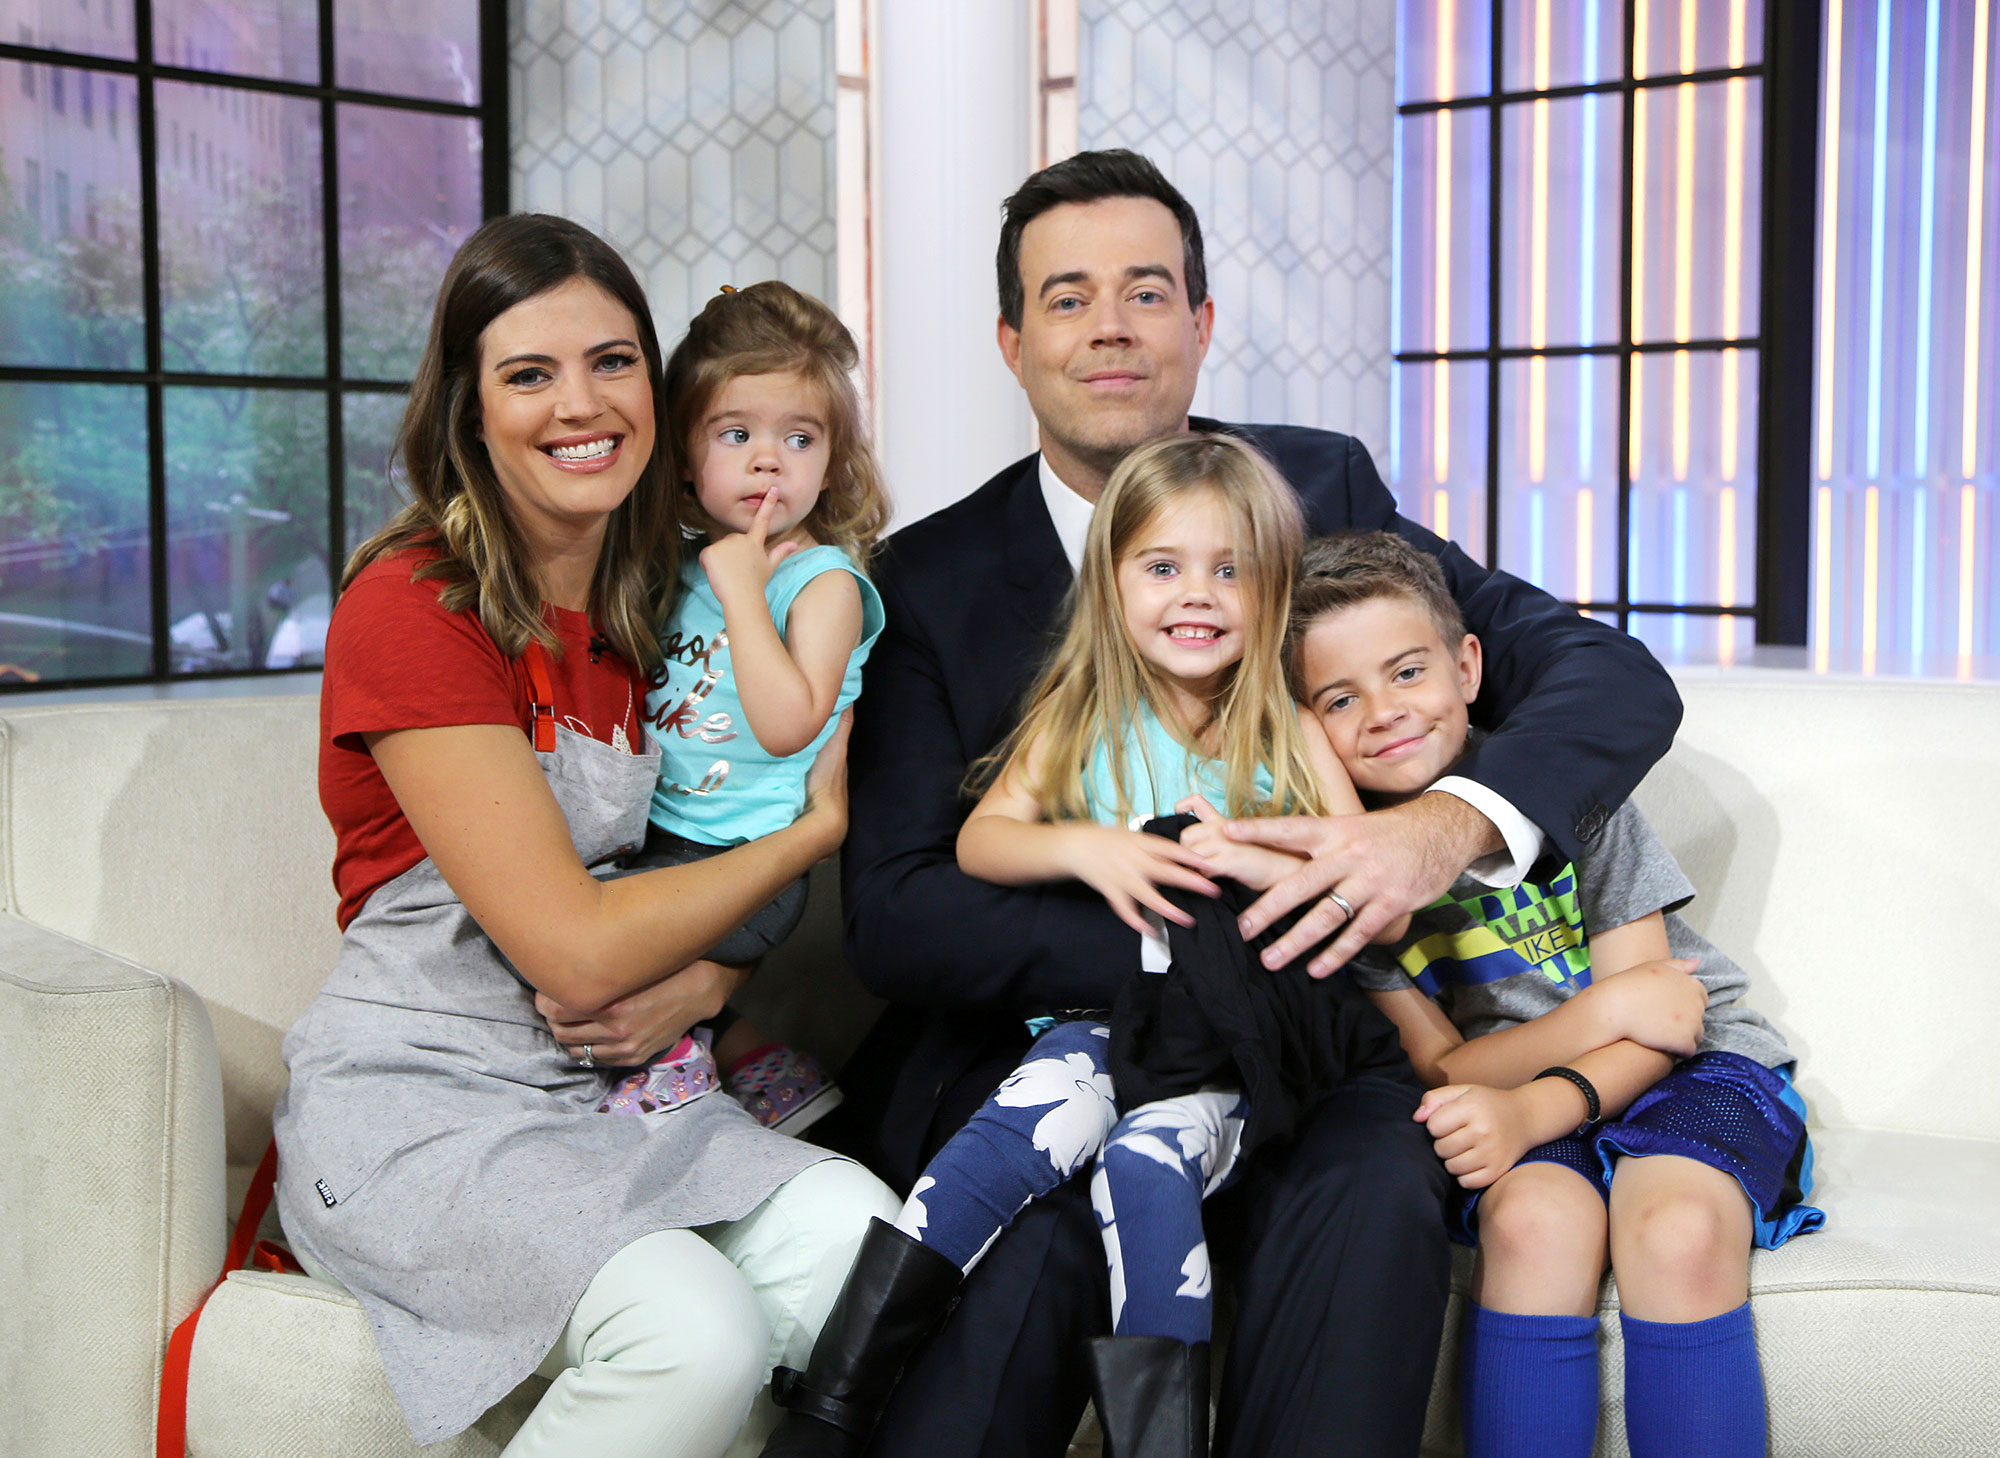 Carson Daly Reveals He Is 'Scared of Loving' His Three Kids Too Much - (L-R) Siri Daly, London Rose, Carson Daly, Etta Jones, and Jackson James on Thursday, June 8, 2017.